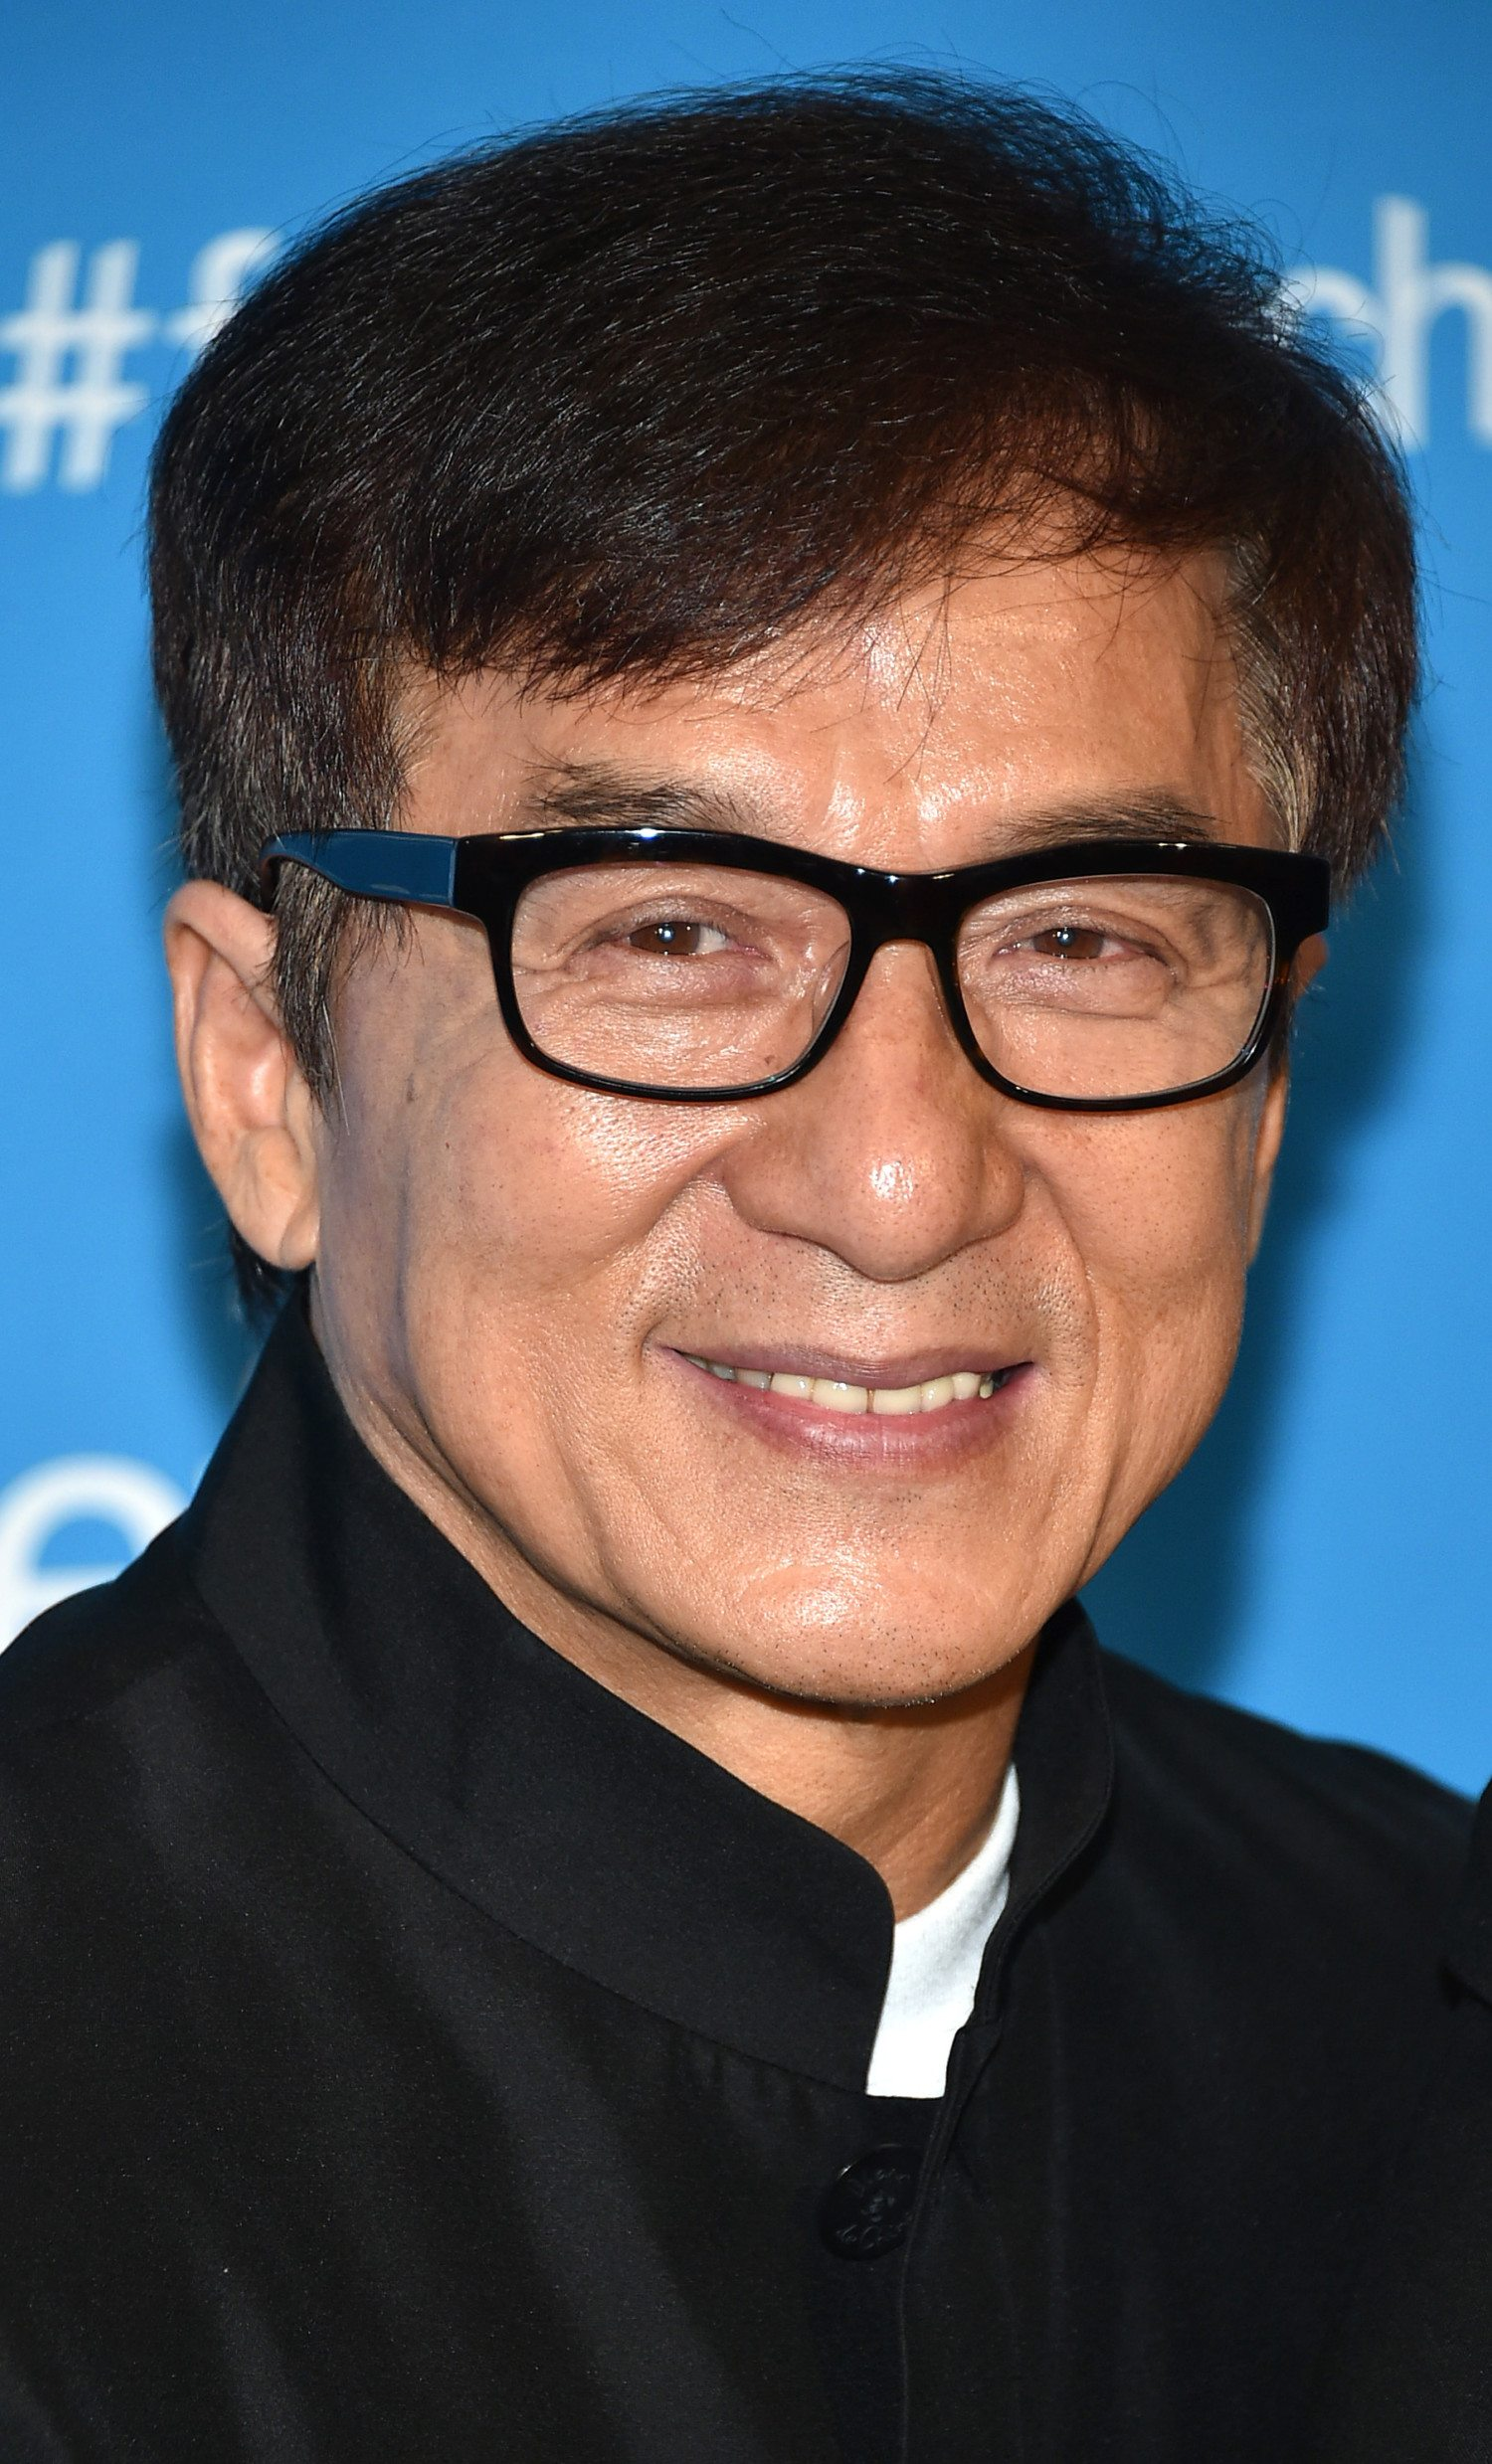 jackie chan vertical photo